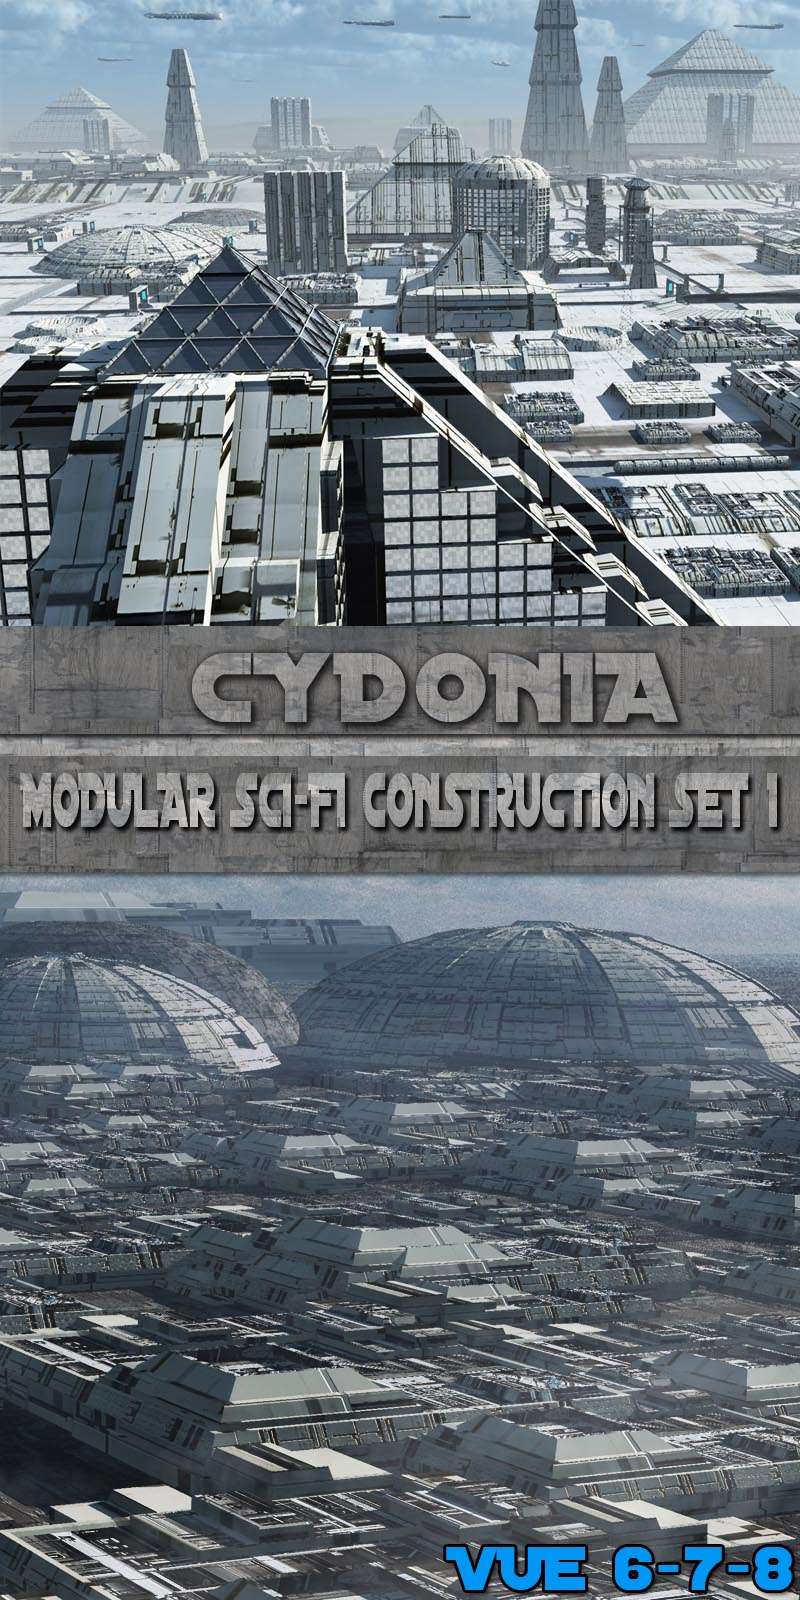 Cydonia Modular Sci-Fi Construction Set 1